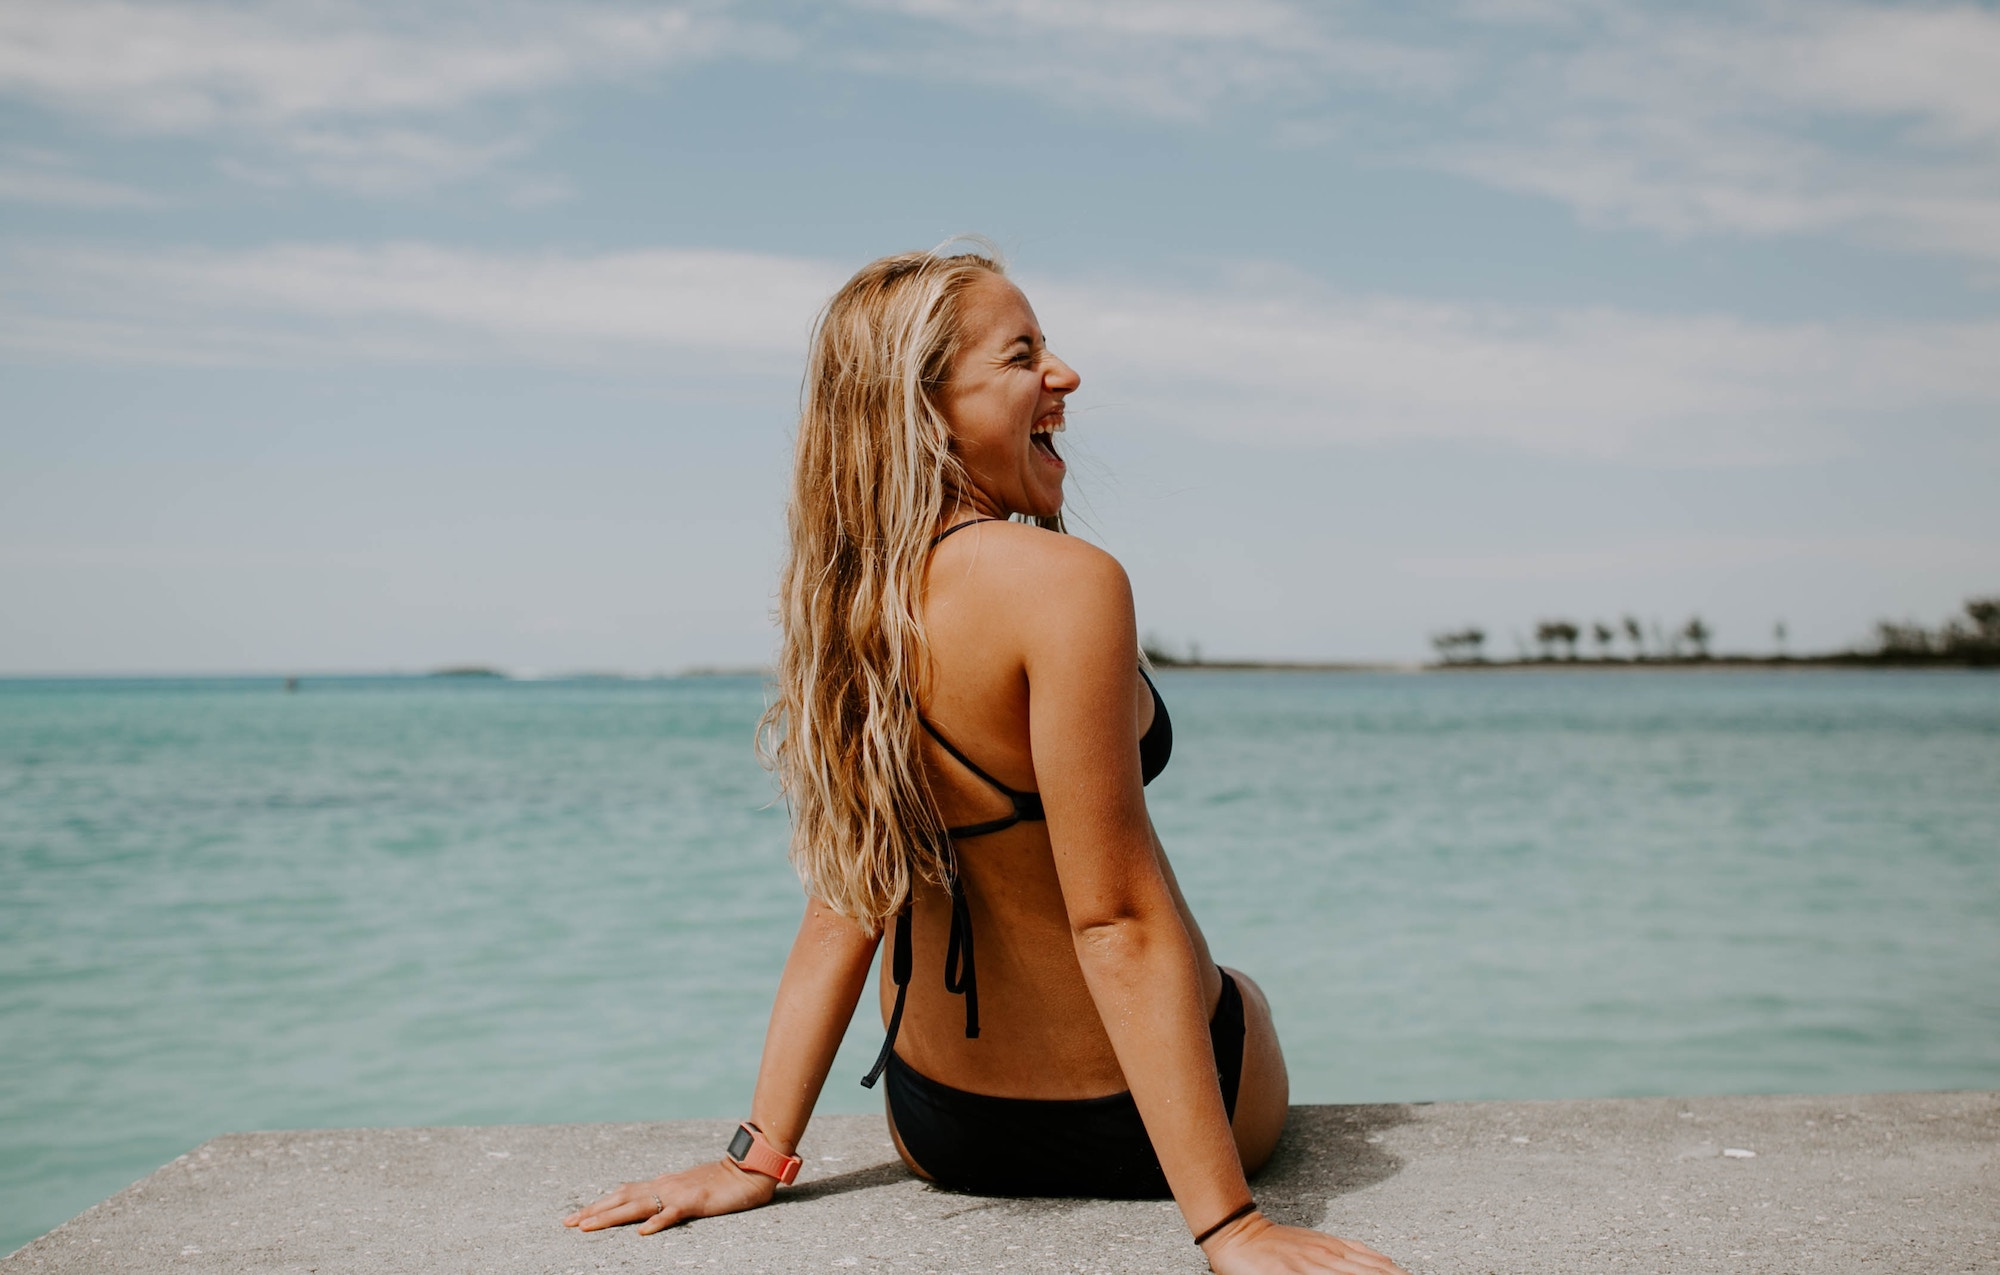 Shopping for a bikini in Pari is not easy but we love this black swimsuit with a crossed back worn by this laughing blonde girl sitting on a concrete slab by the sea.